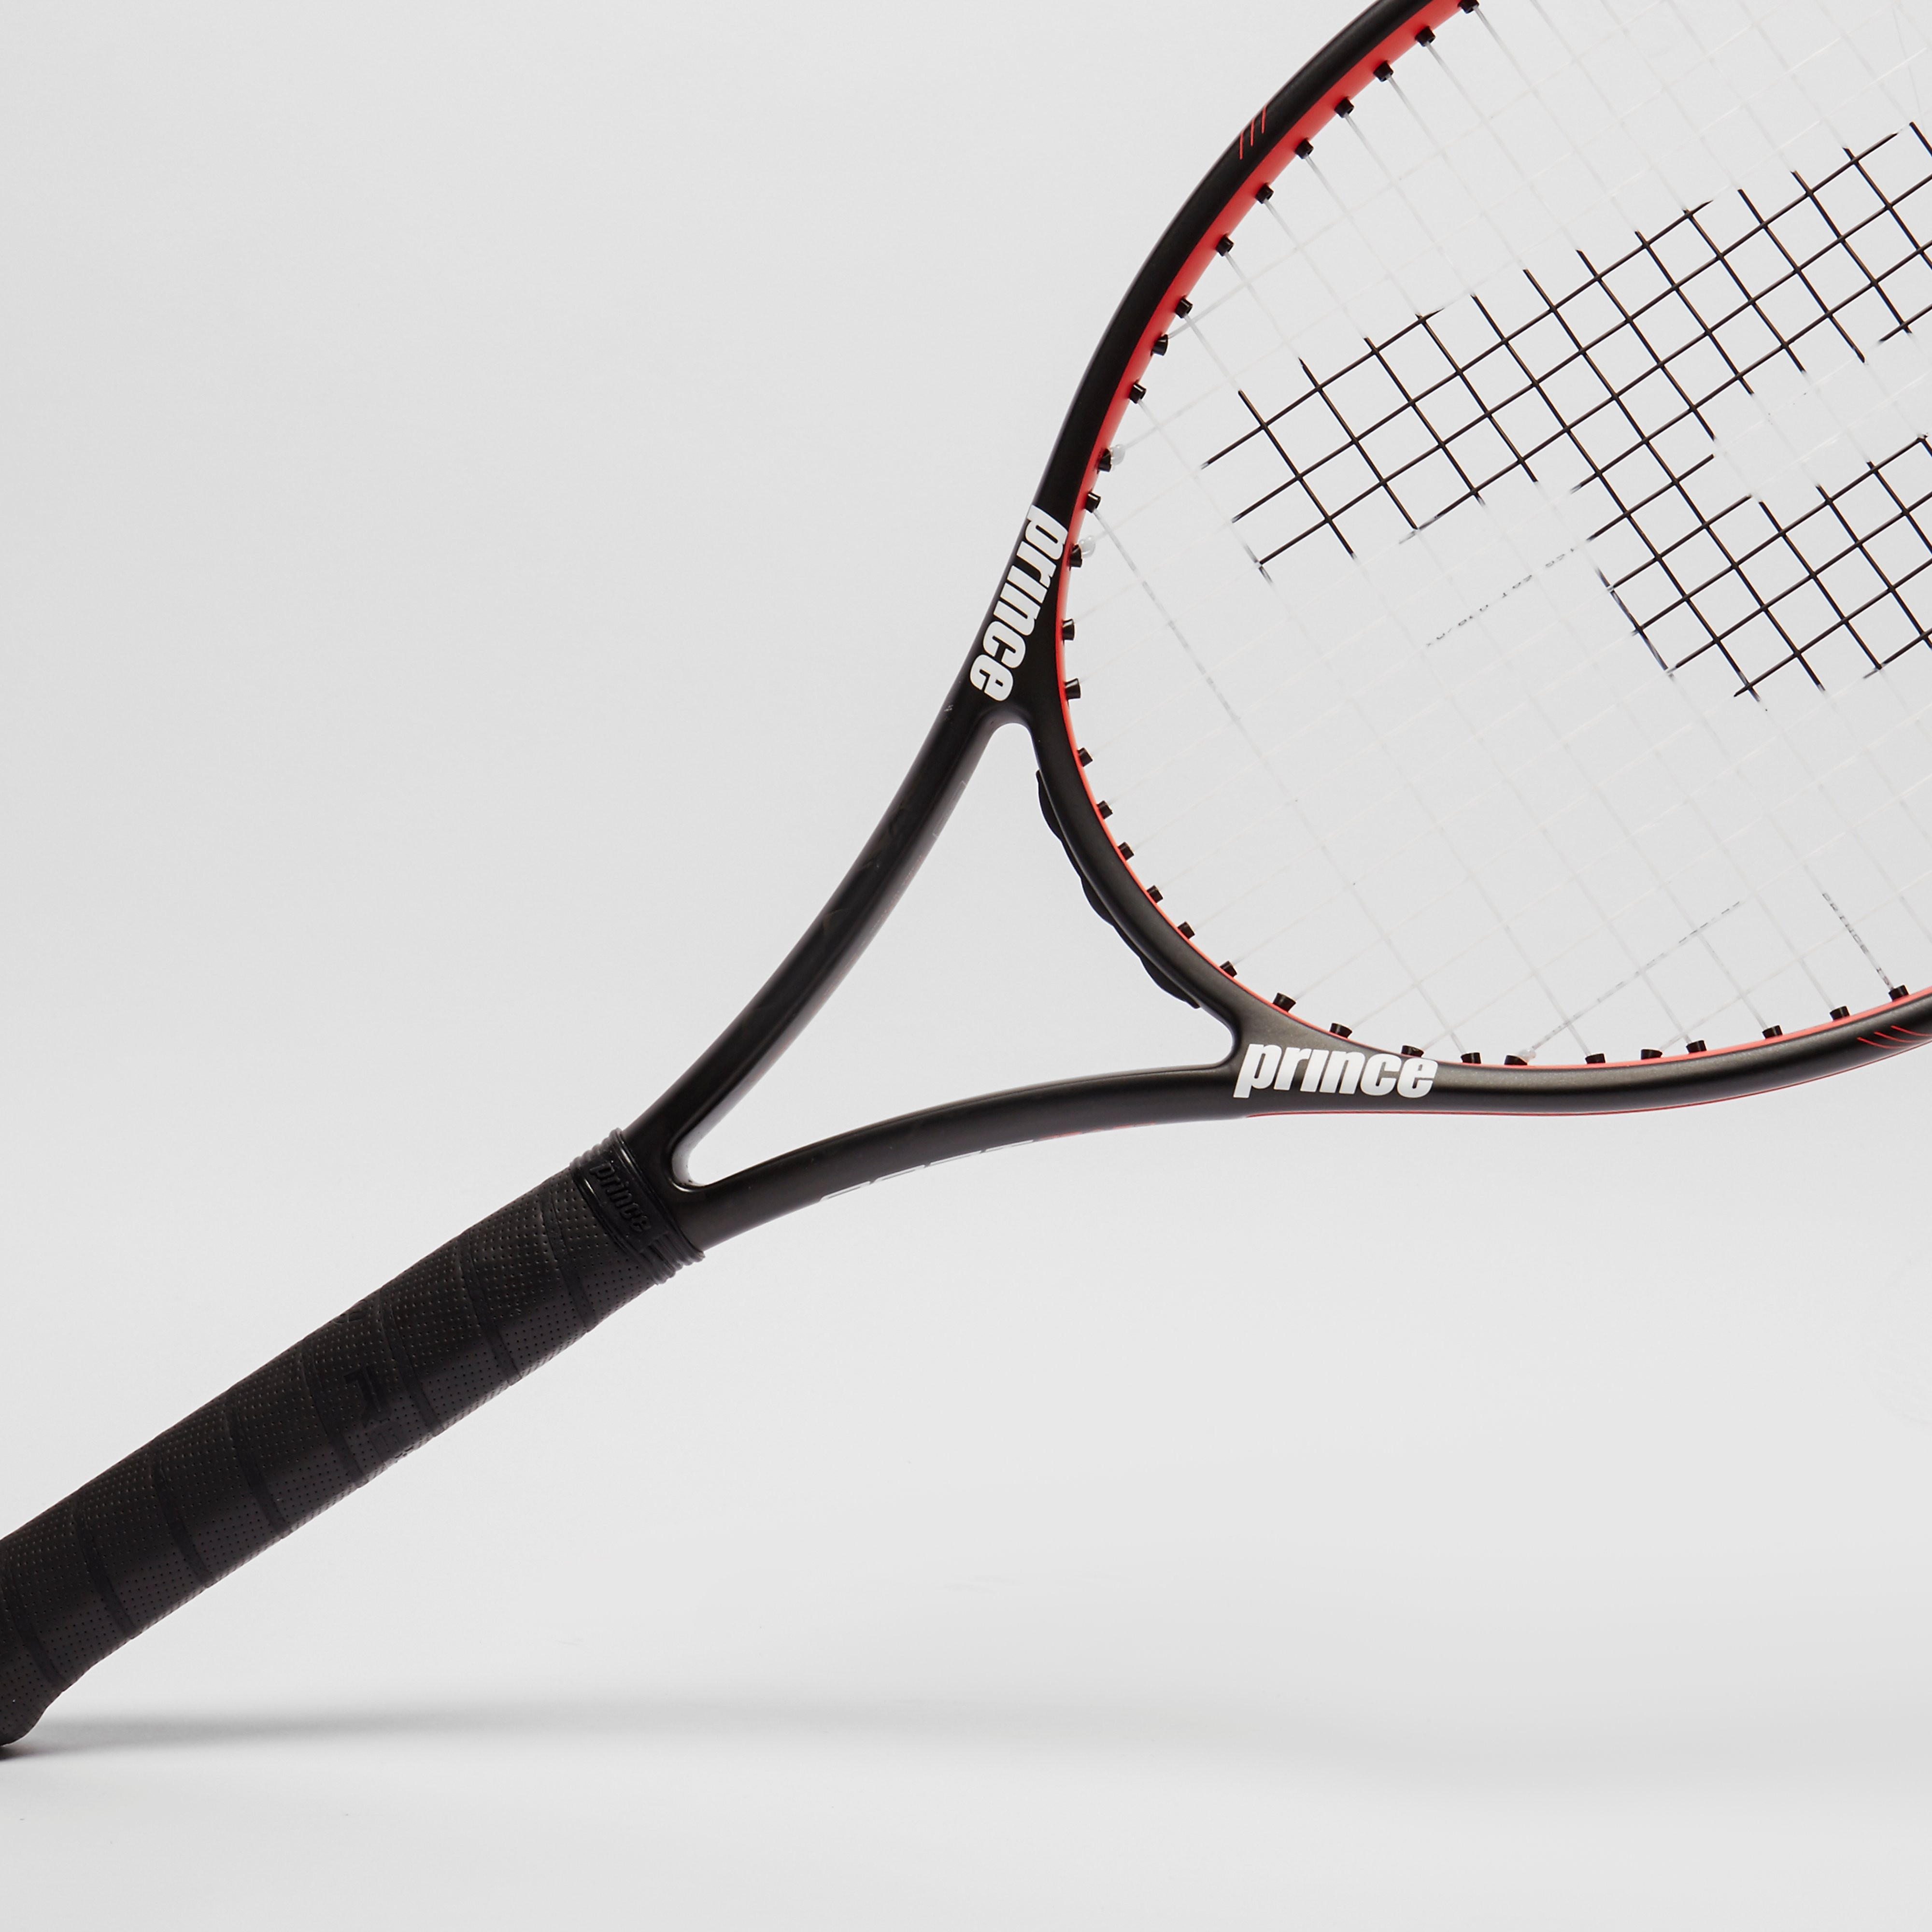 Prince Warrior 107 Tennis Racket